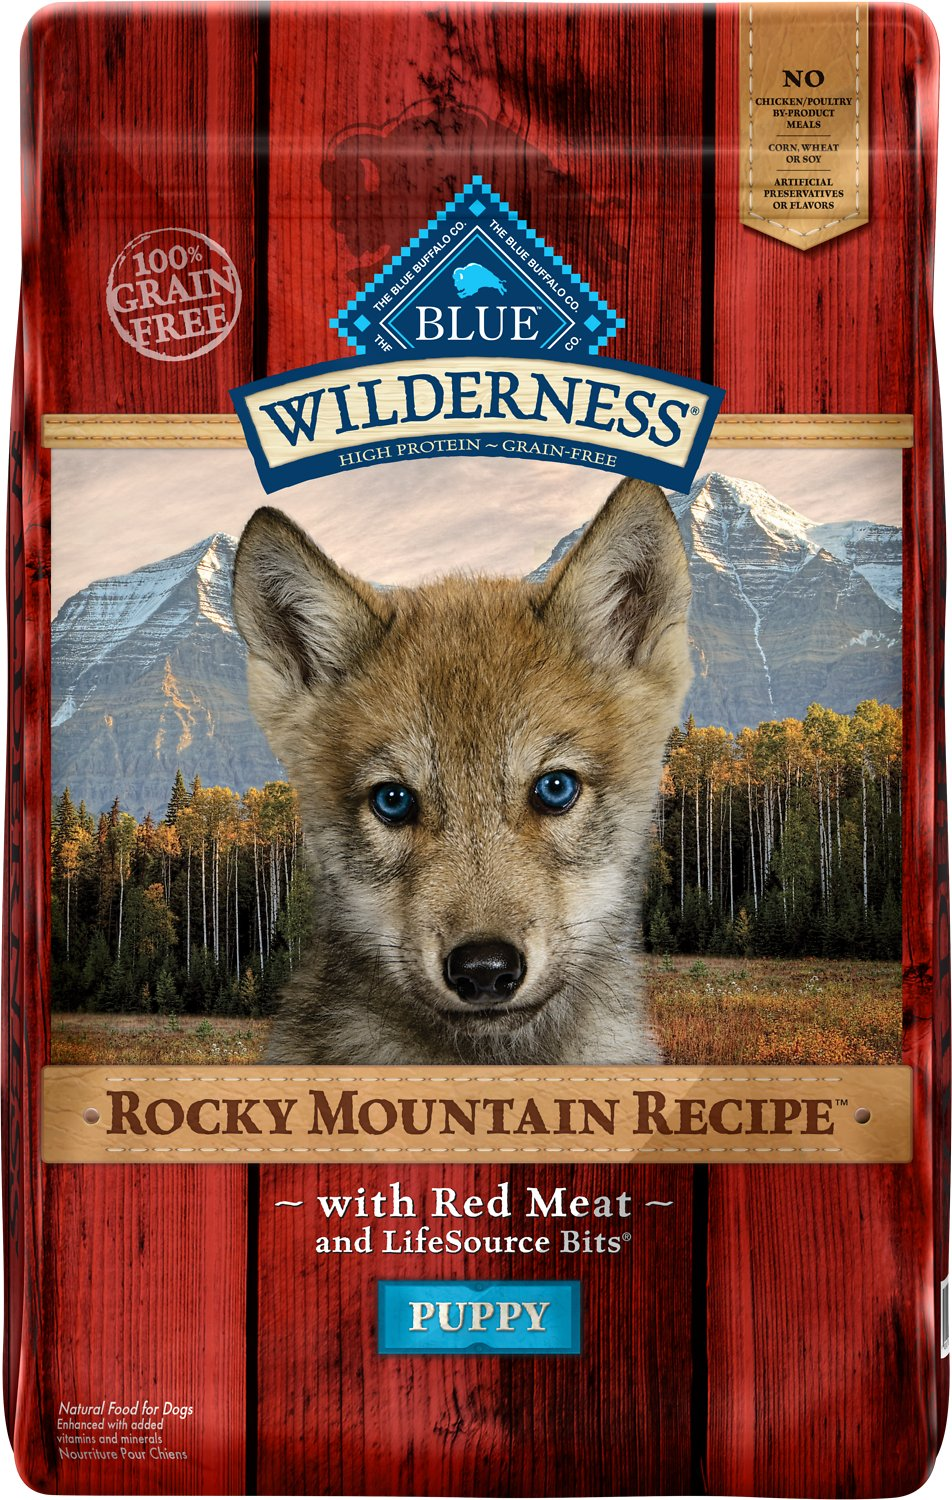 Blue Buffalo Wilderness Rocky Mountain Recipe with Red Meat Puppy Grain-Free Dry Dog Food Image